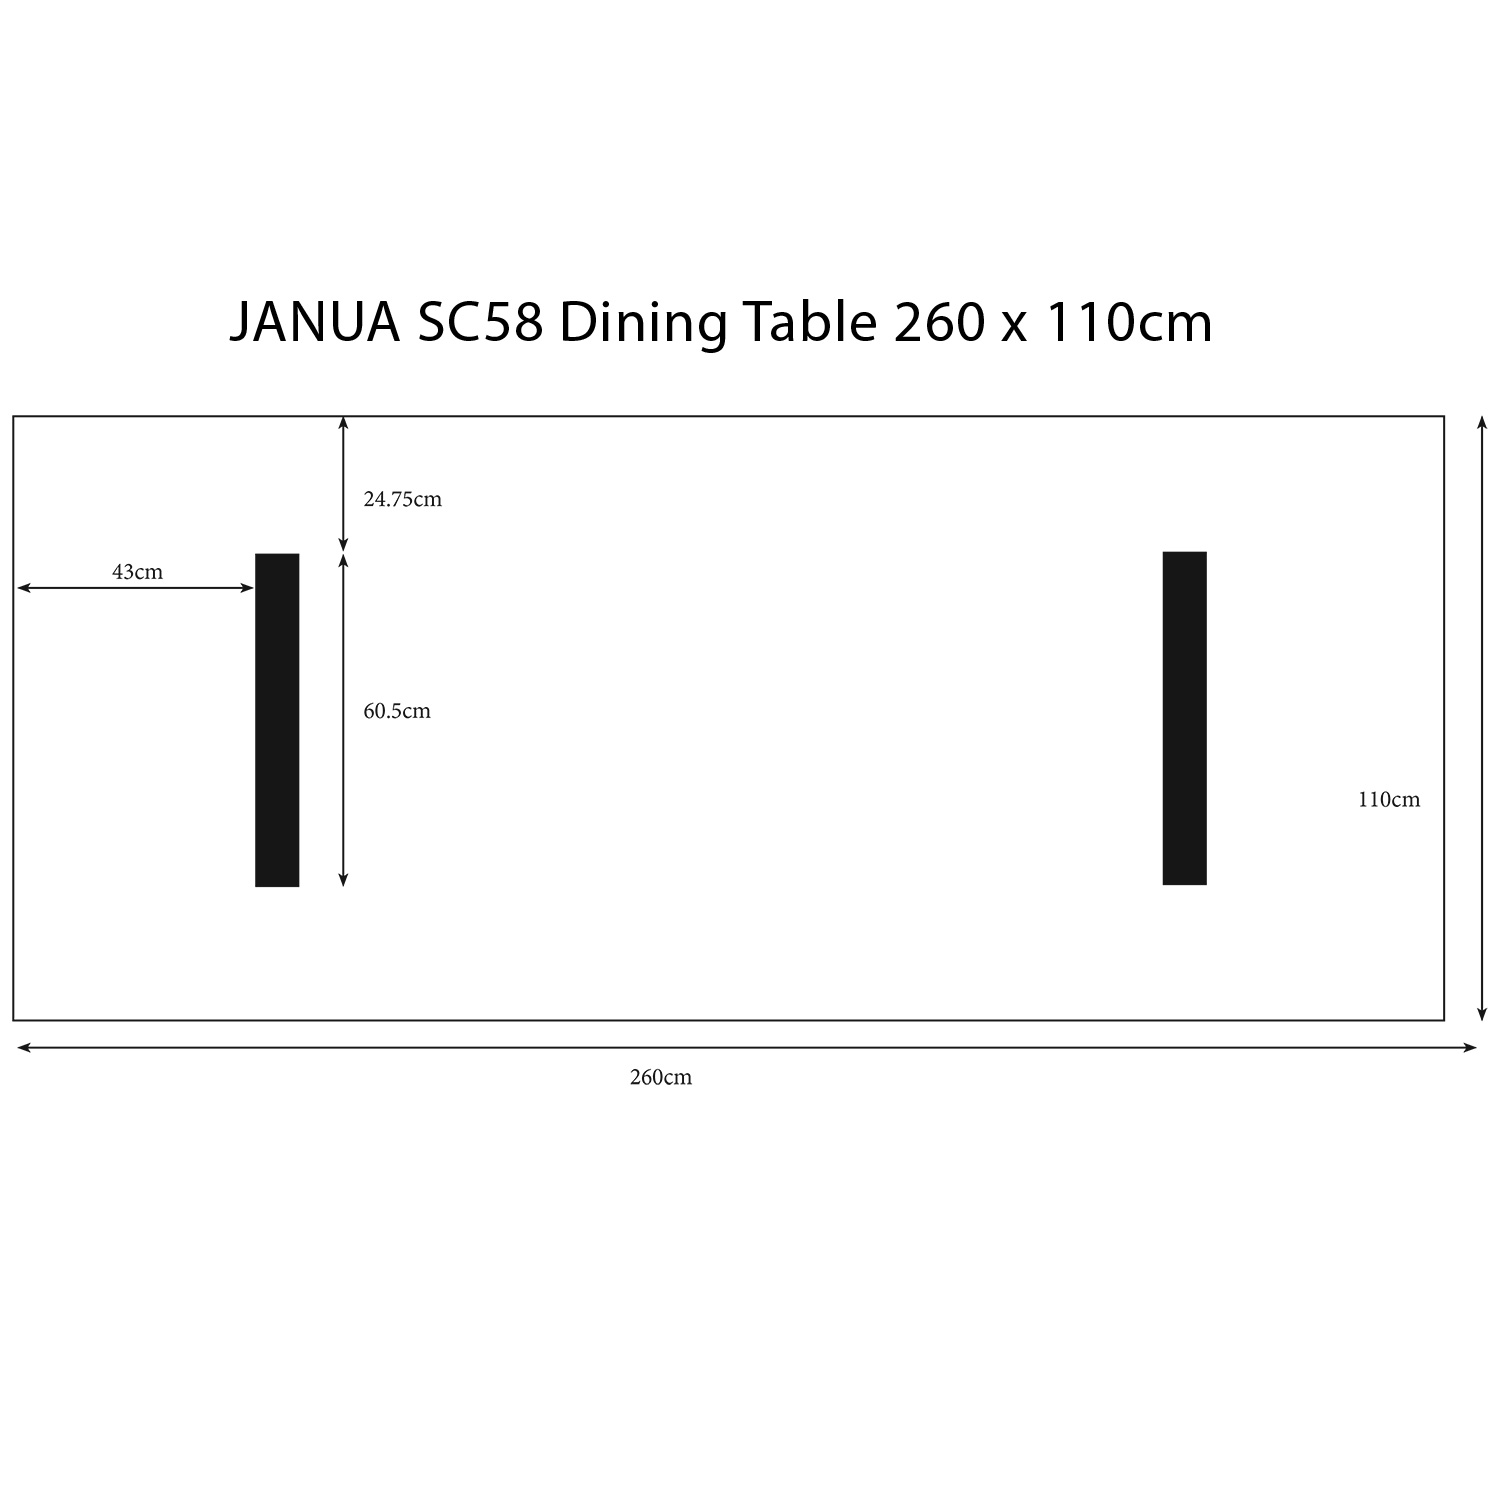 sc58 2 6m table pictorial dimensions